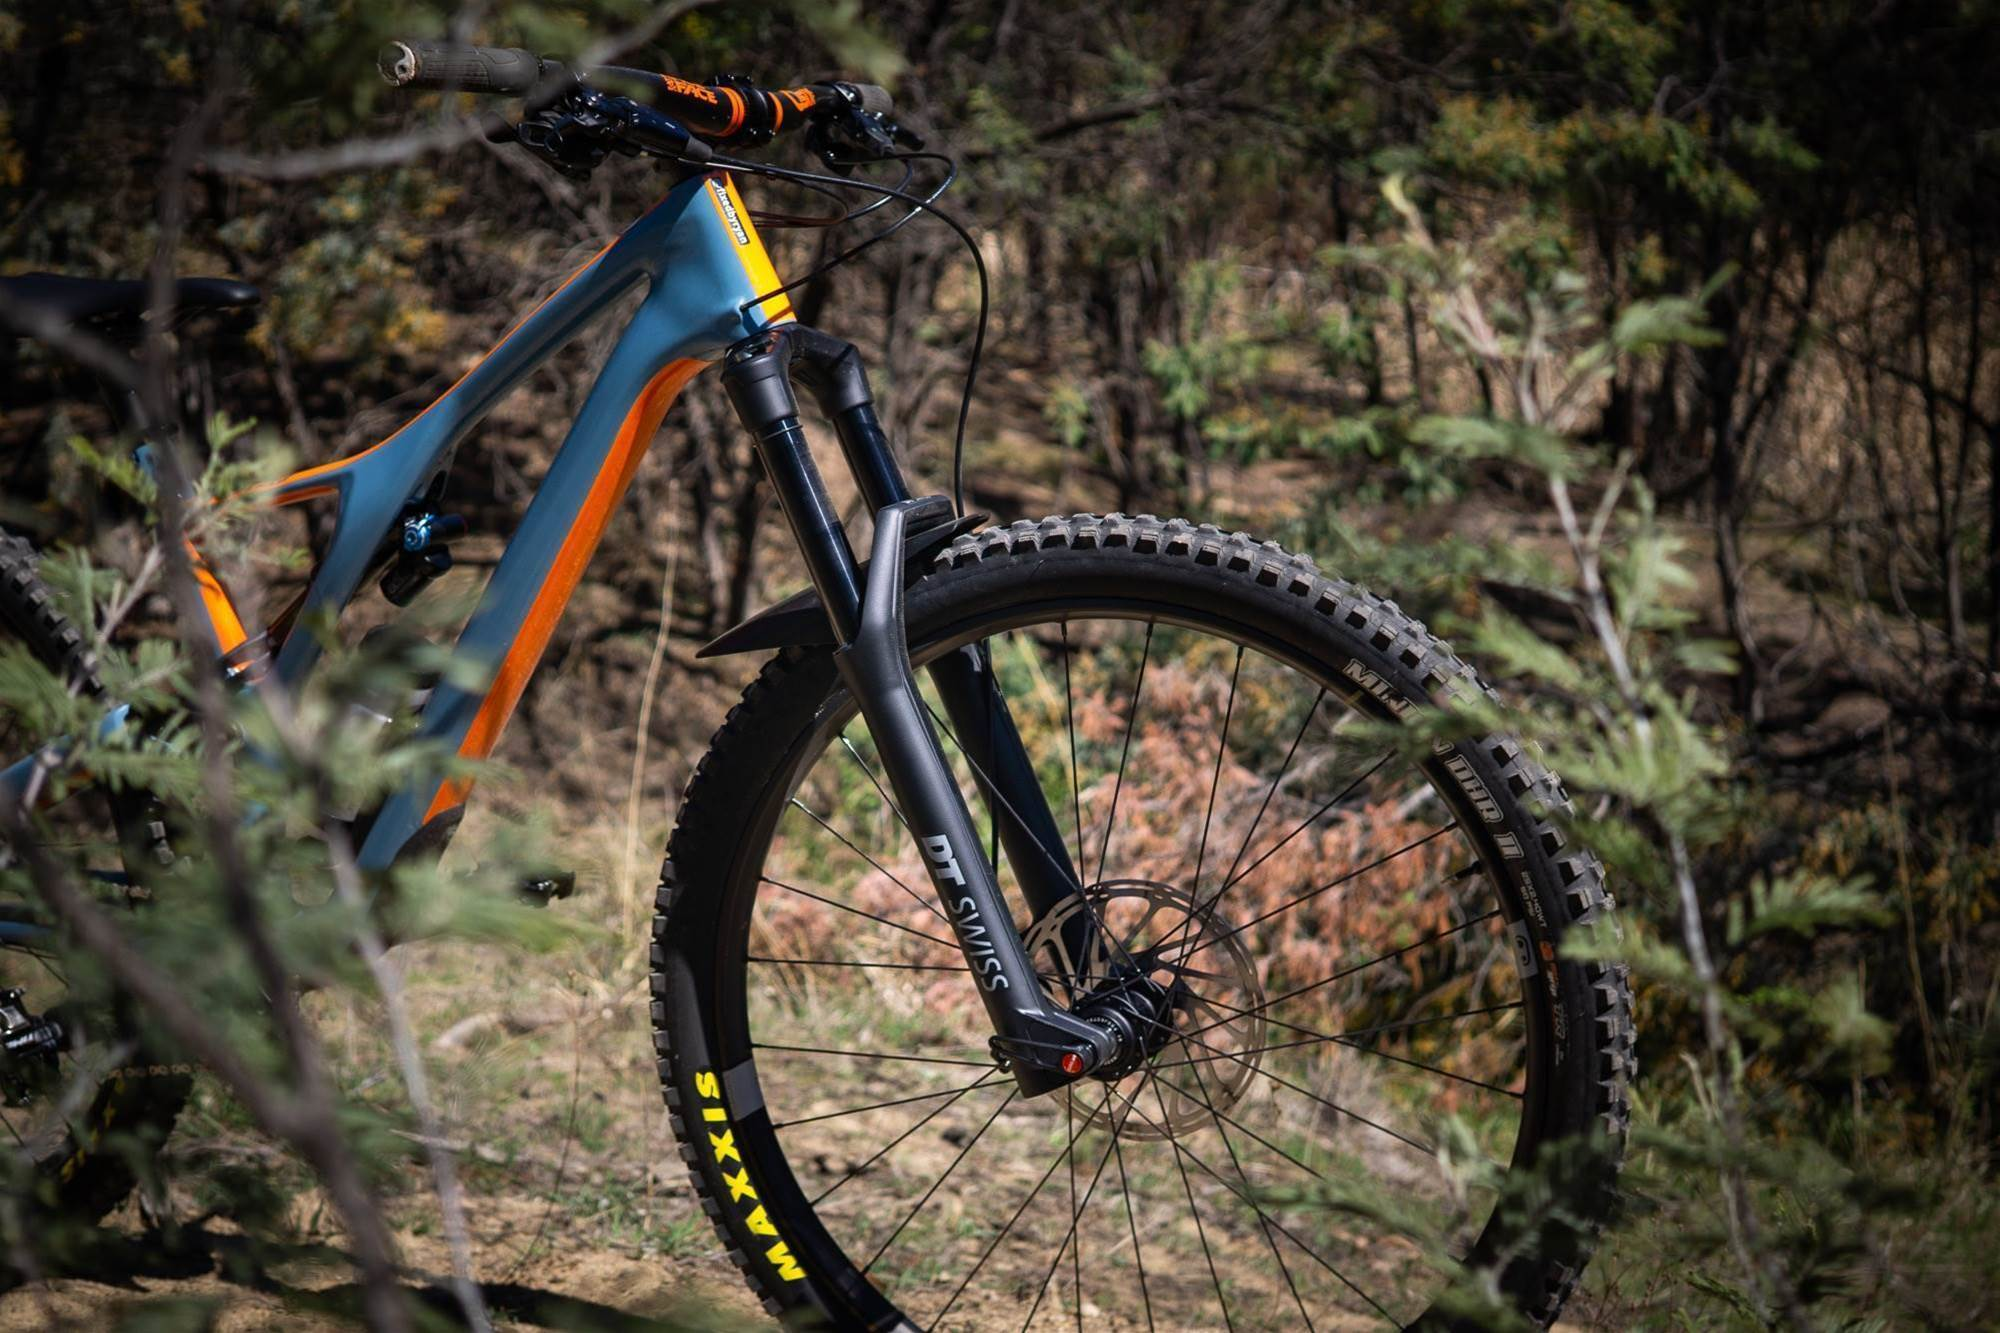 FIRST LOOK: DT Swiss F535 suspension fork